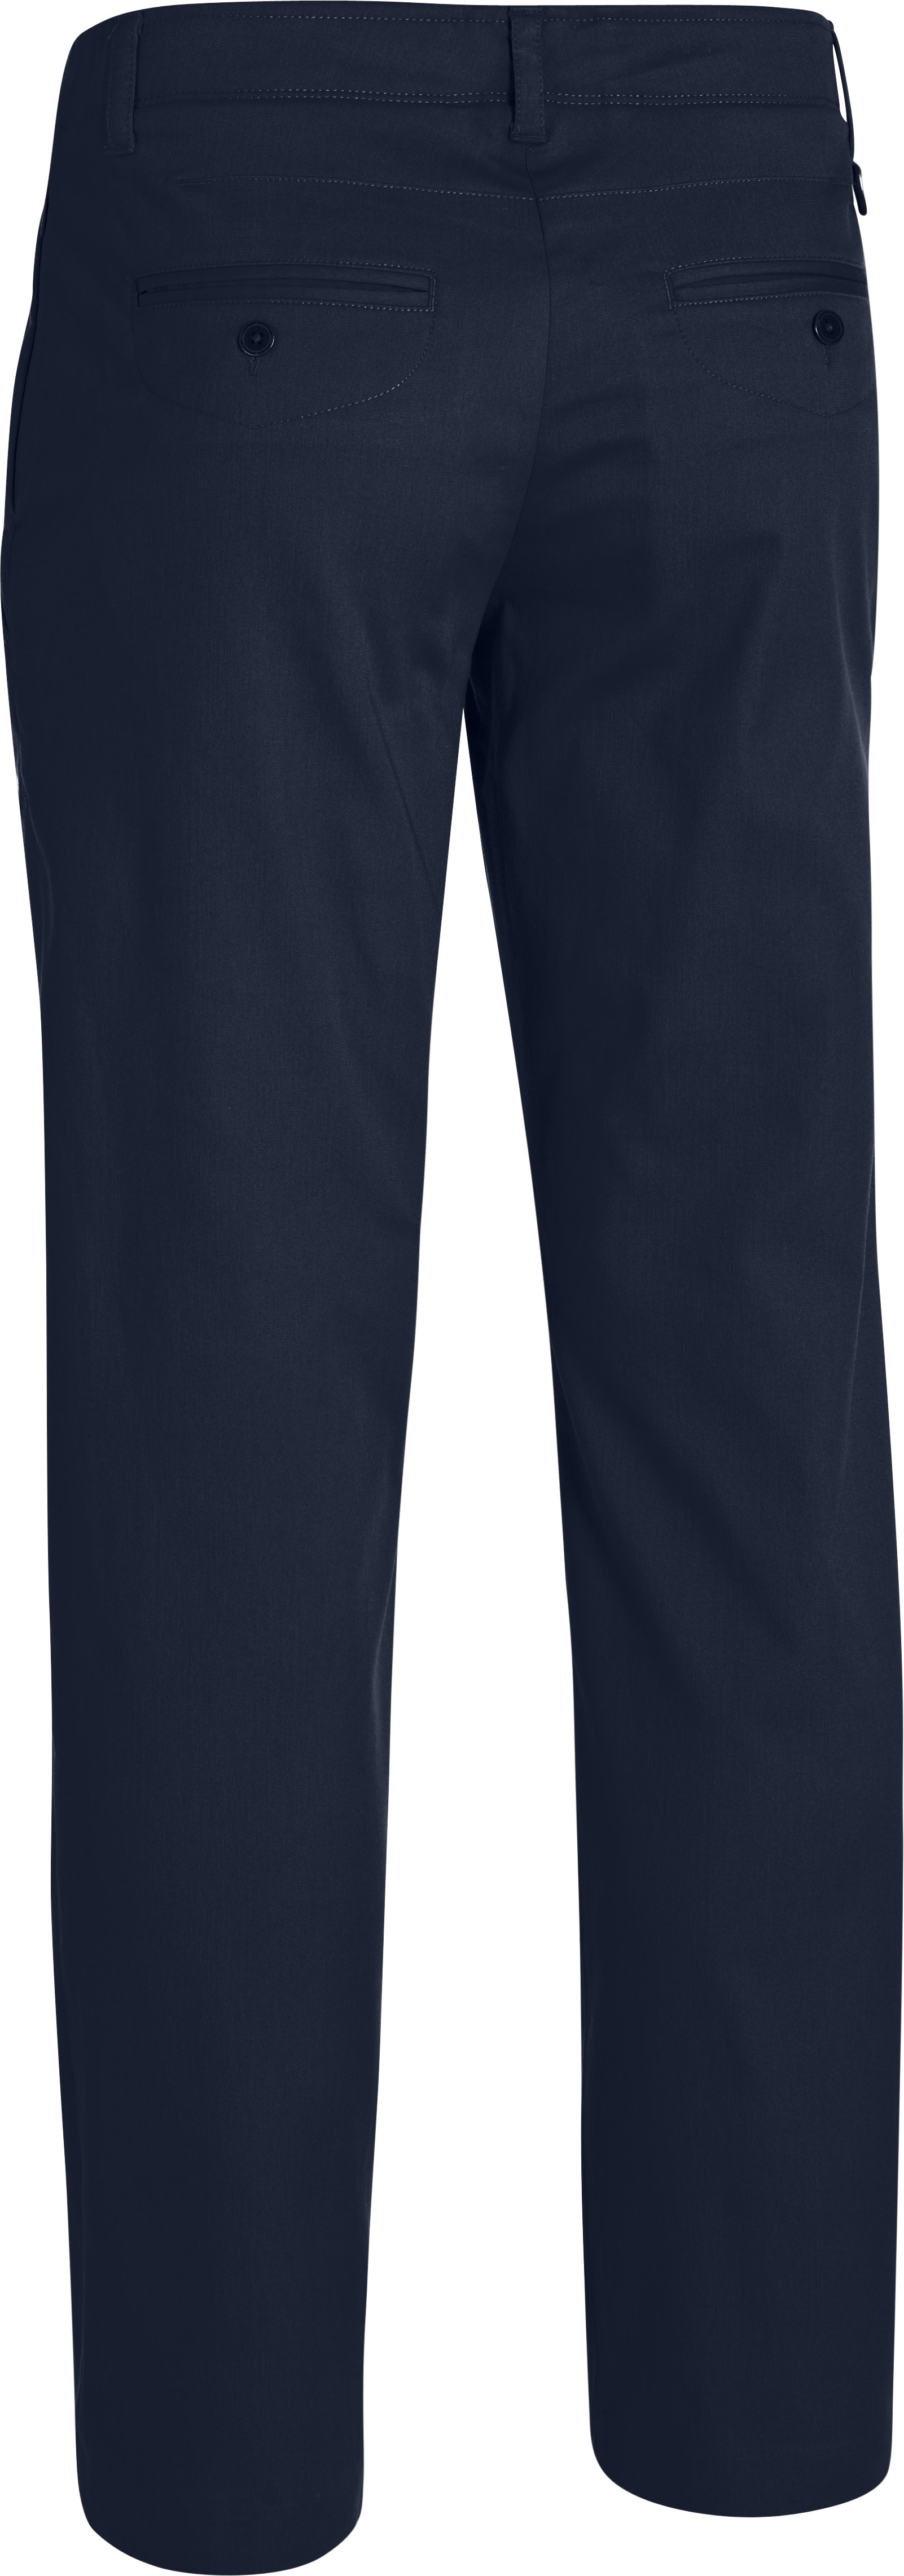 Men's UA Performance Chino, Cadet